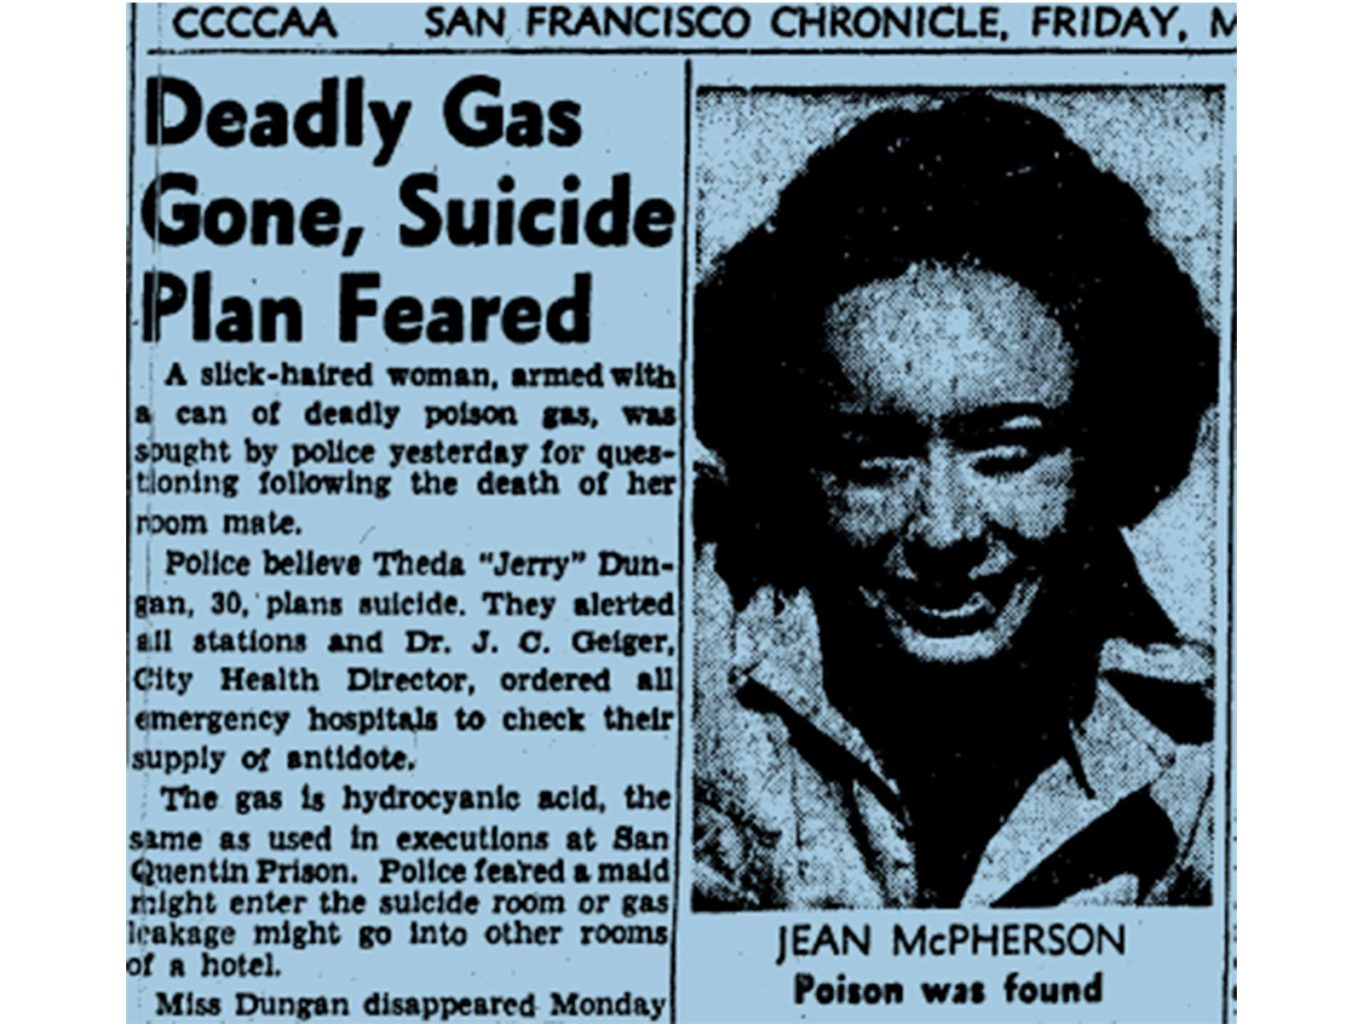 Jean McPherson's death by cyanide poisoning is announced in the San Francisco Chronicle on May 30, 1947. (Courtesy photo)